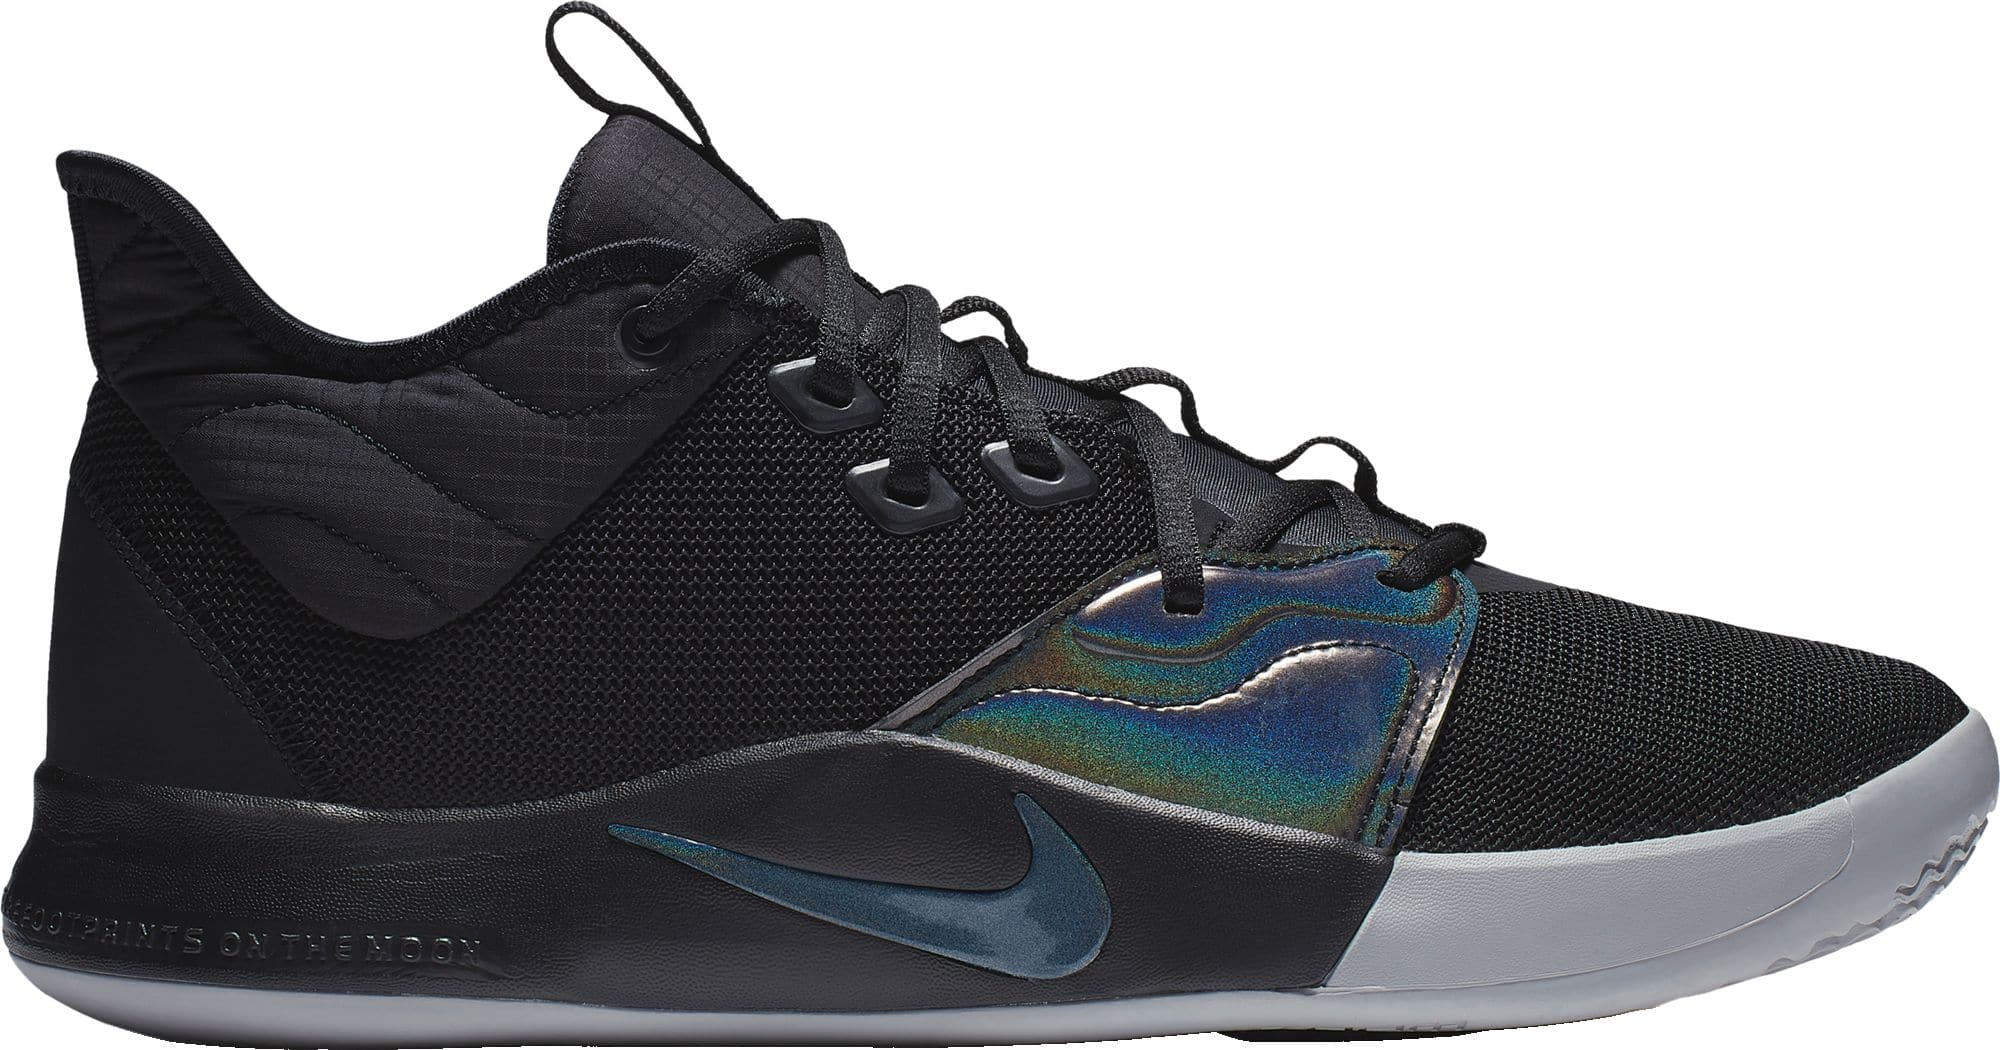 Nike PG3 Men's Basketball Shoes $59.97